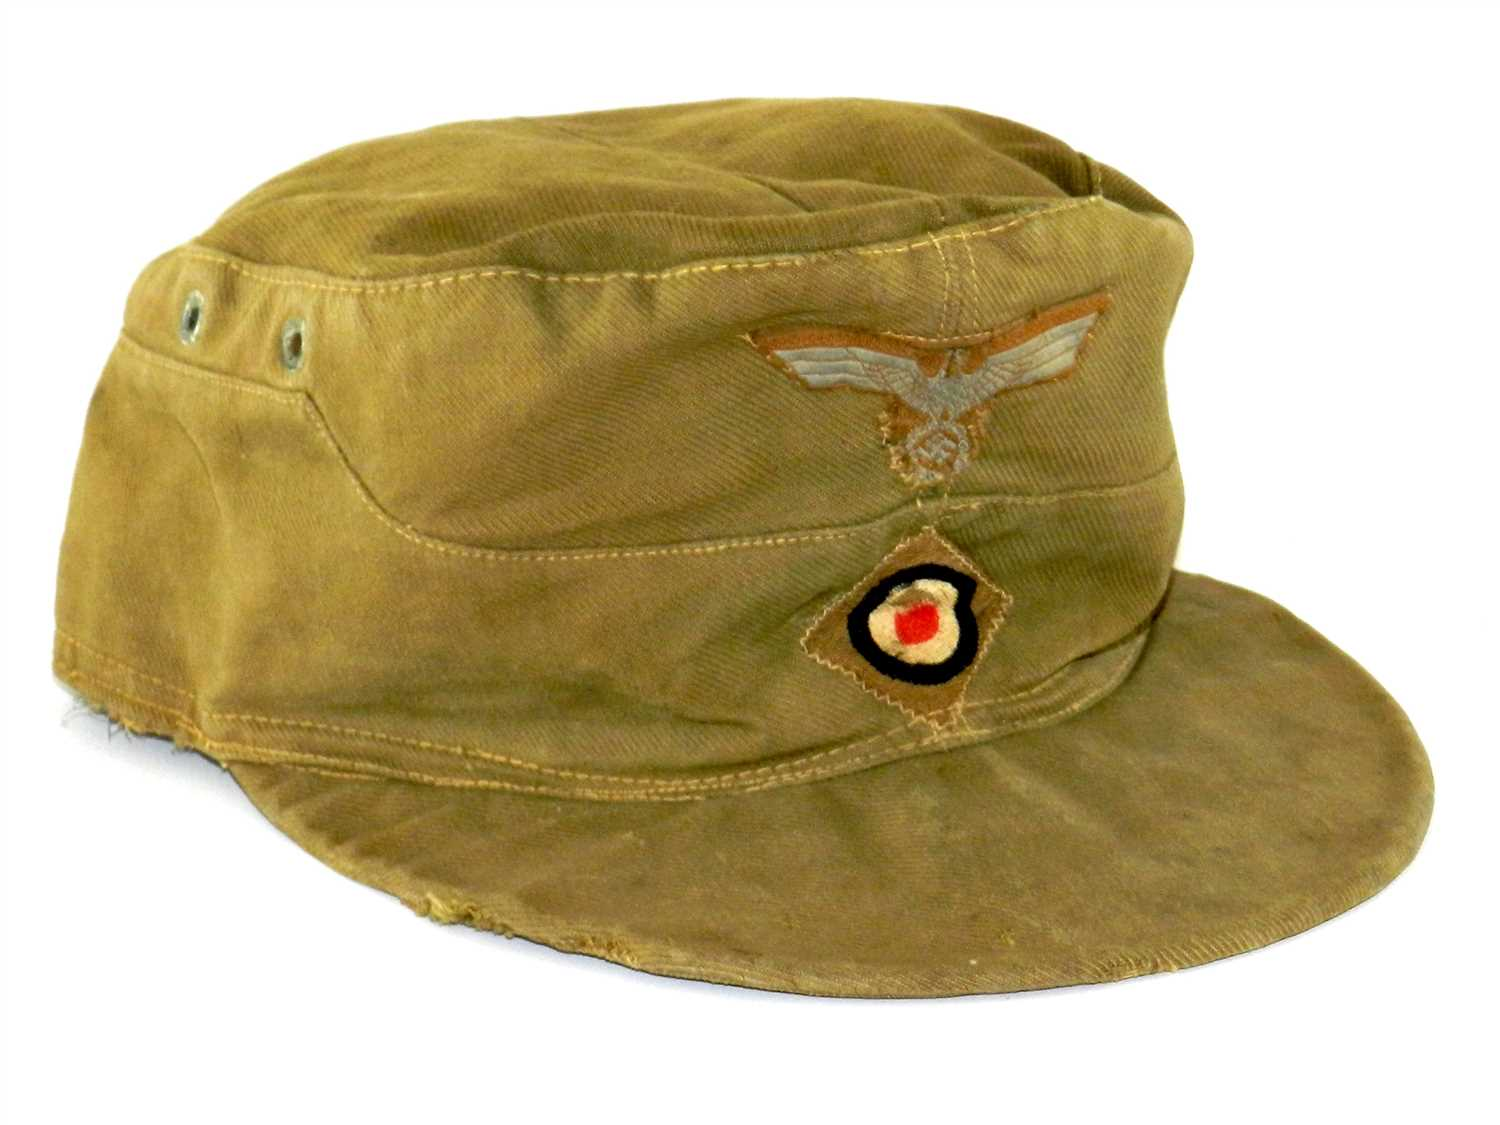 518 - A German WWII Afrika Korps Tropical or 'Oveaseas' cap